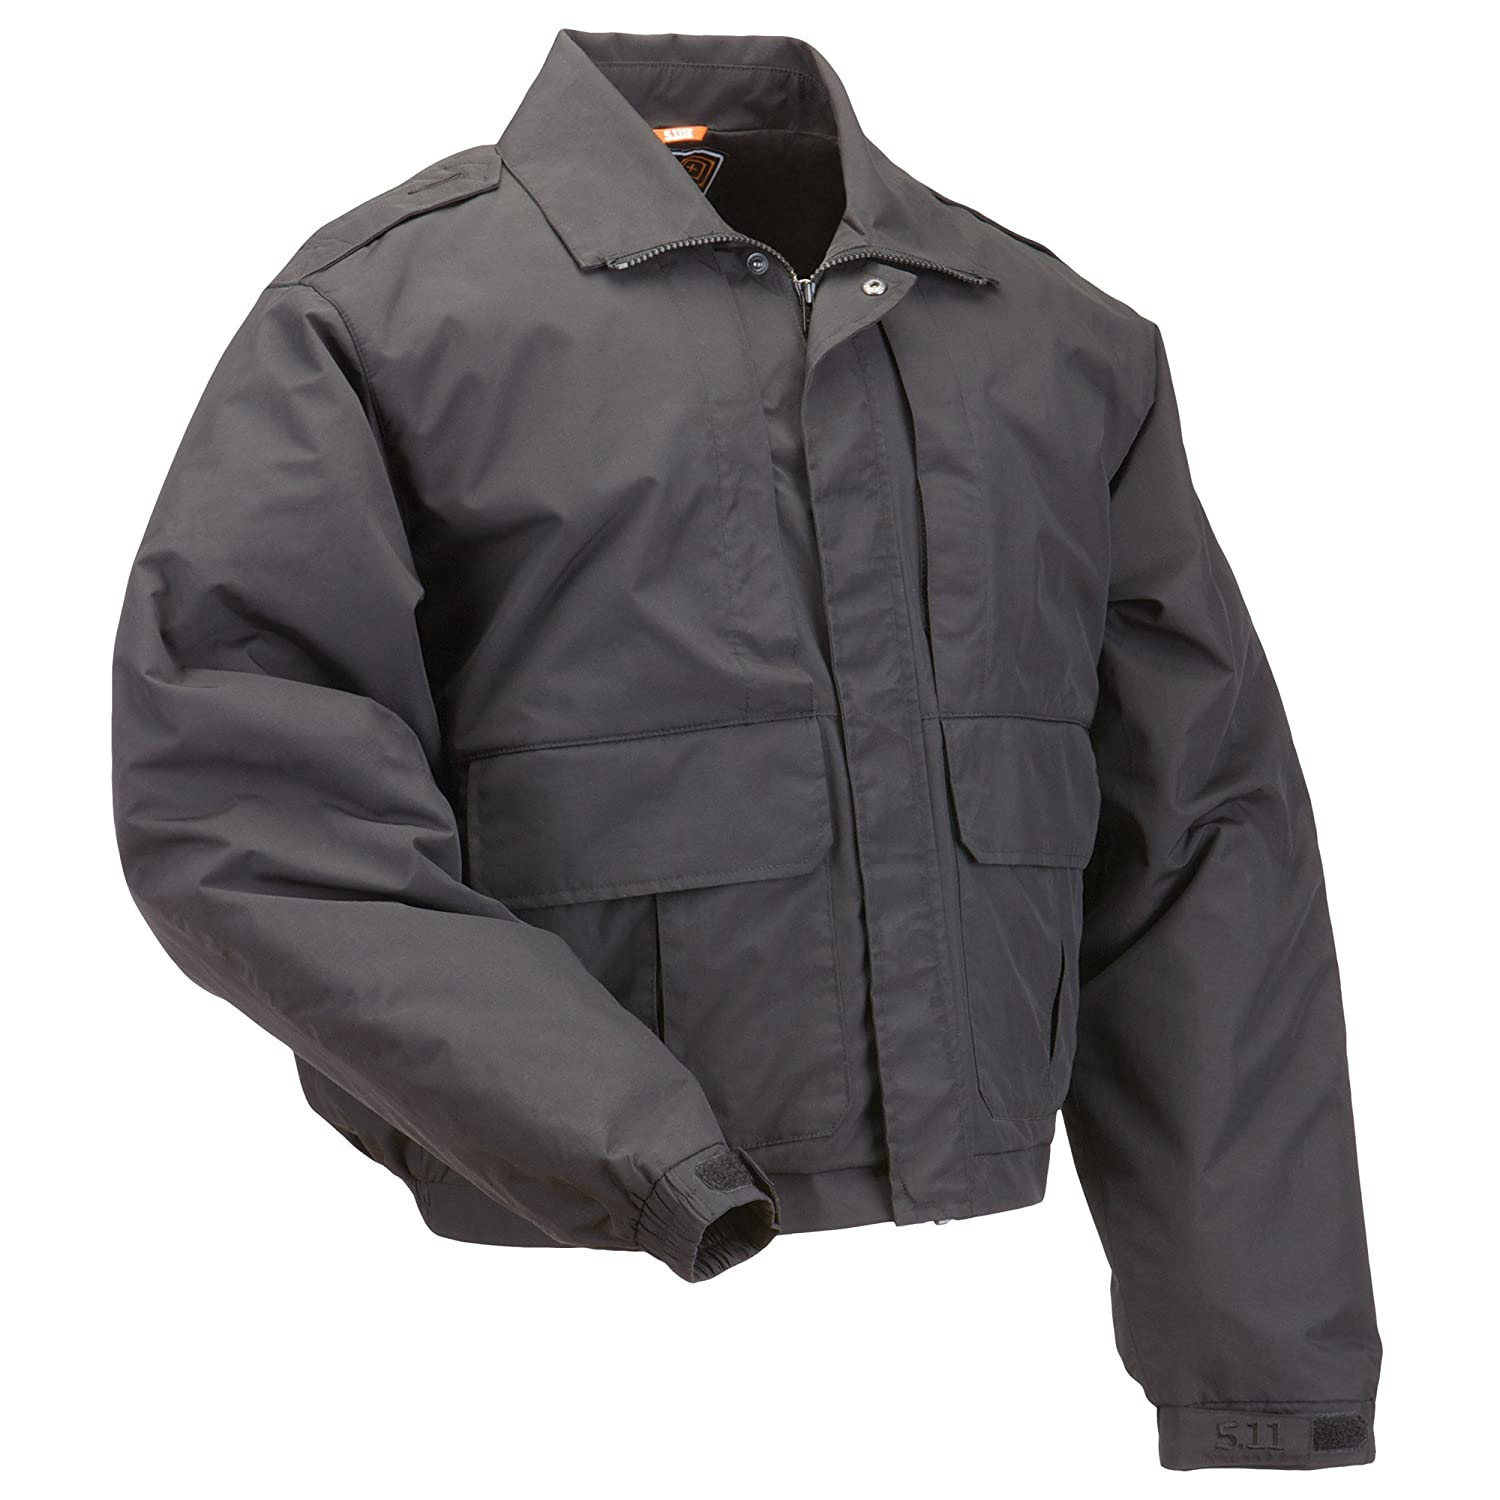 5.11 Mens Tactical Double Duty Police/Patrol Jacket with Badge Tab Kit, Style 48096